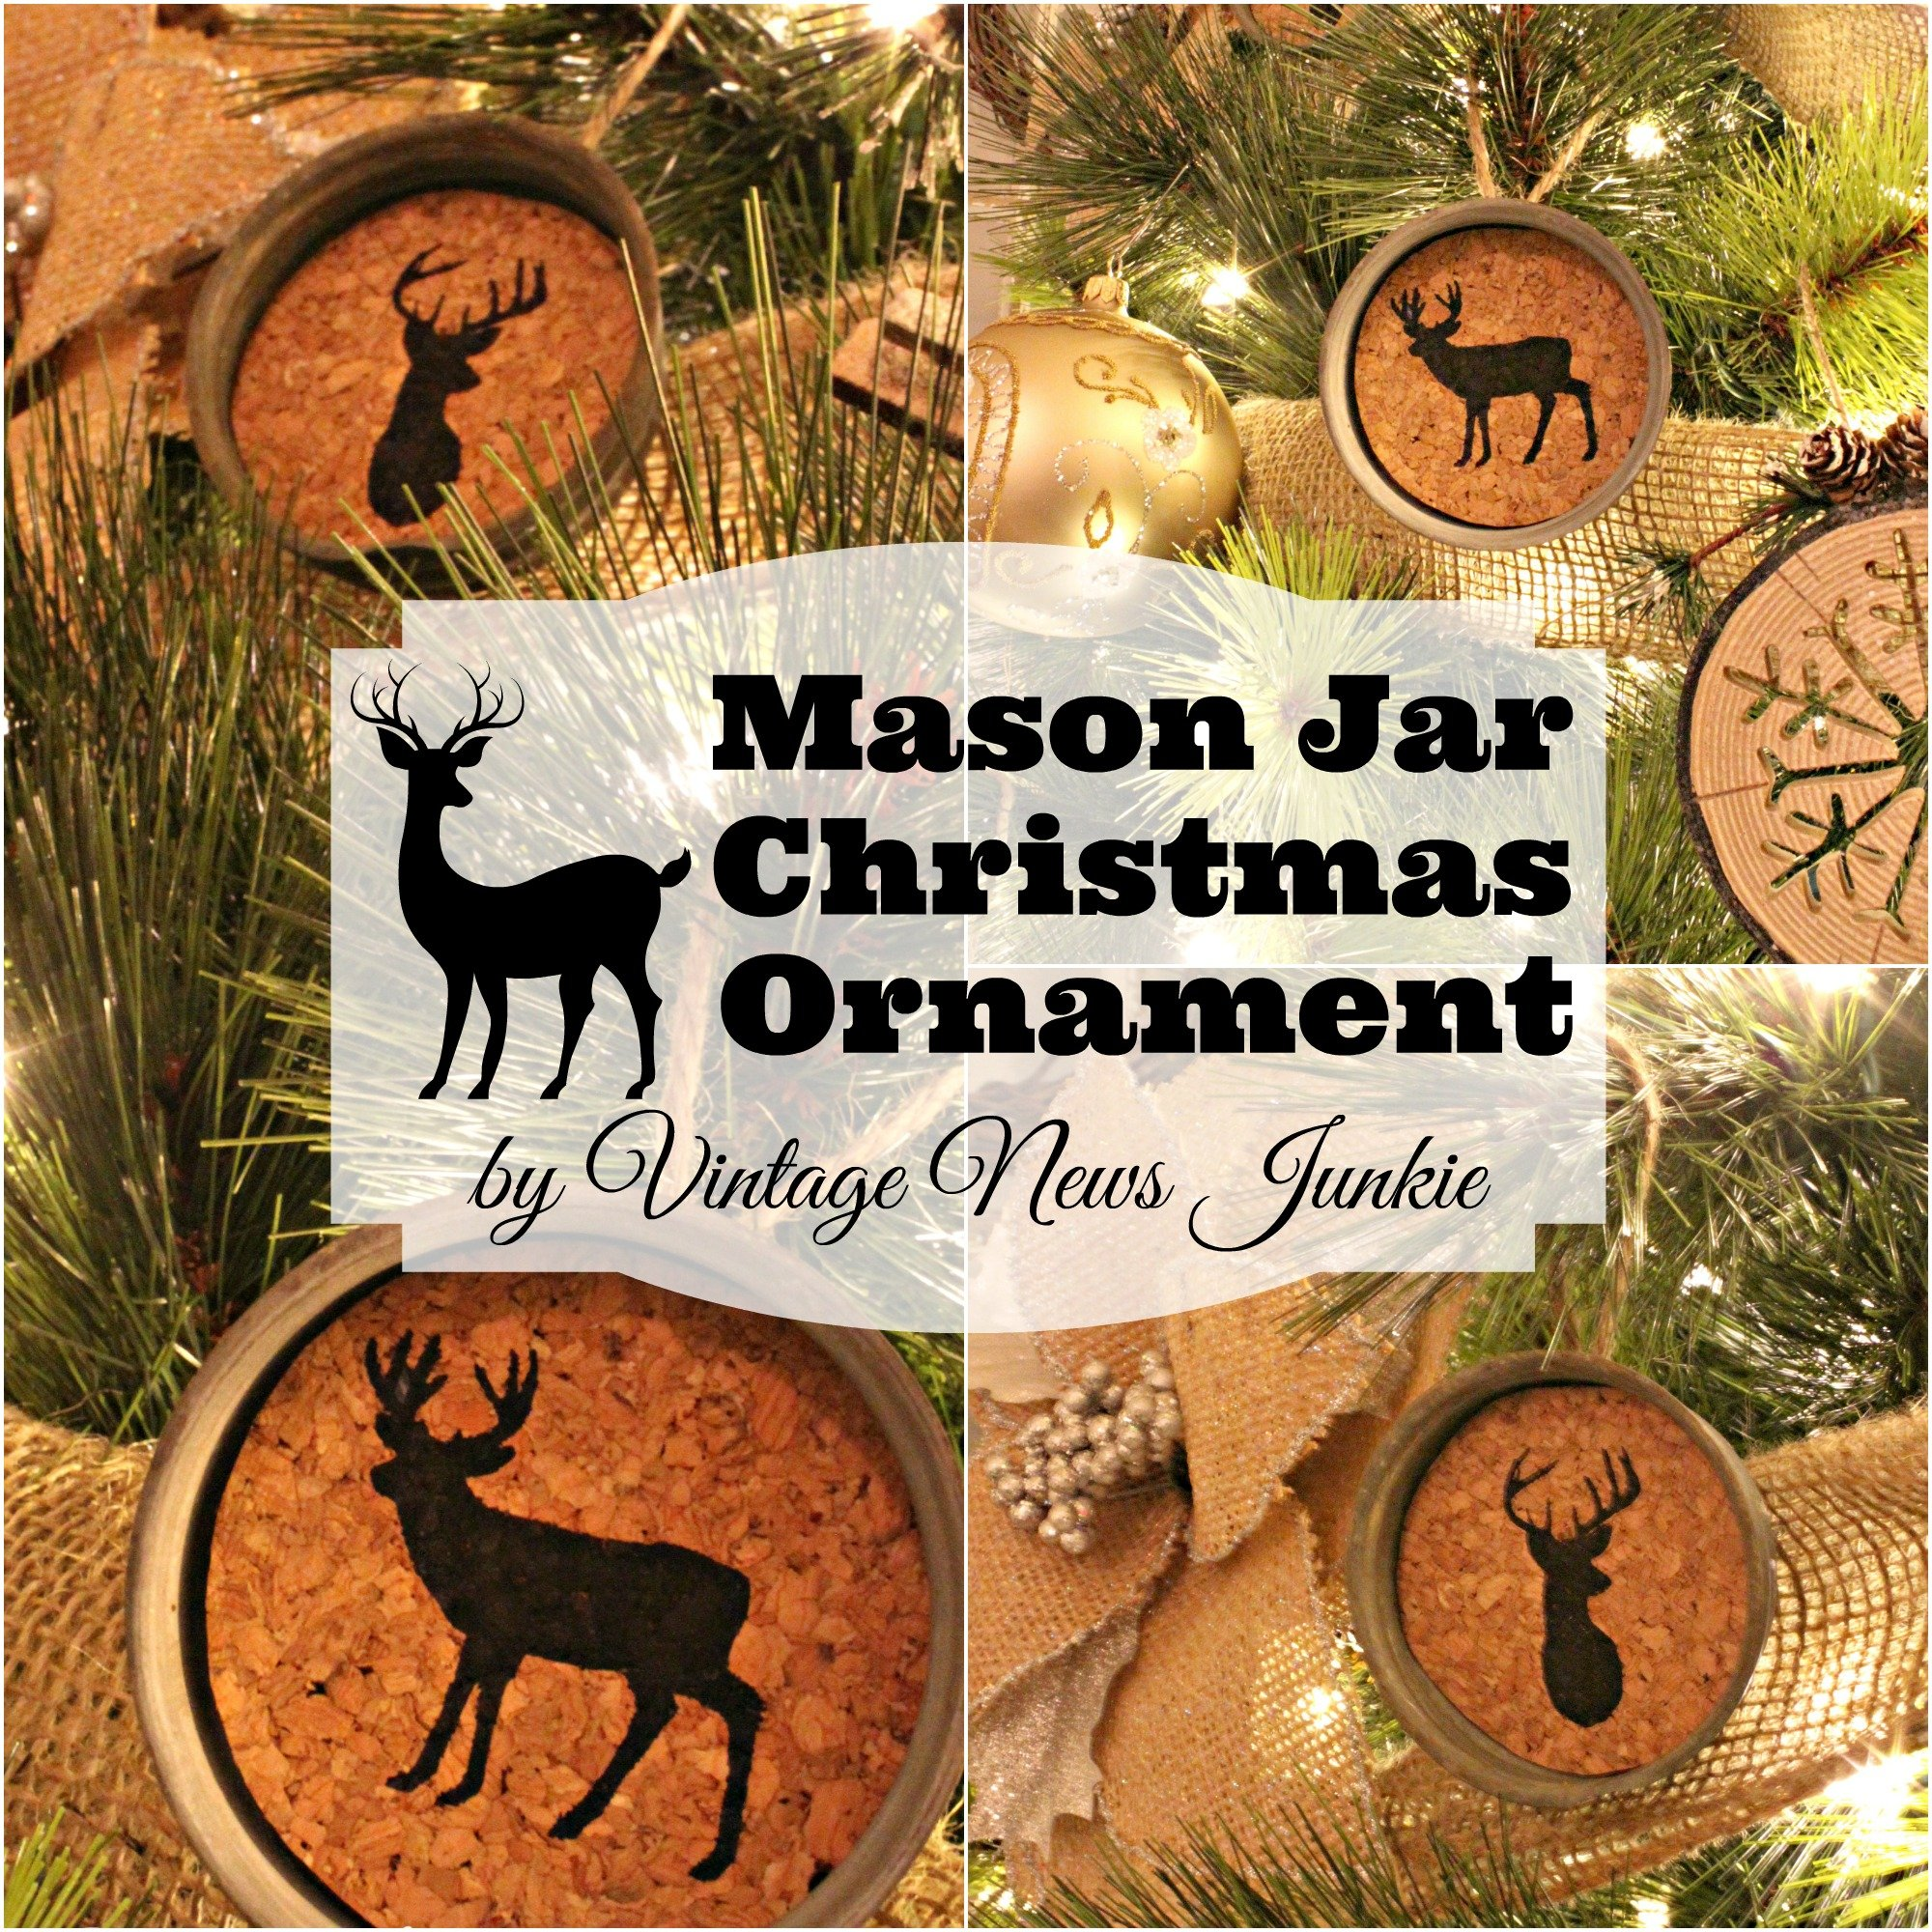 Rustic Christmas Ornaments Diy Rustic Christmas Ornaments The Girl Creative